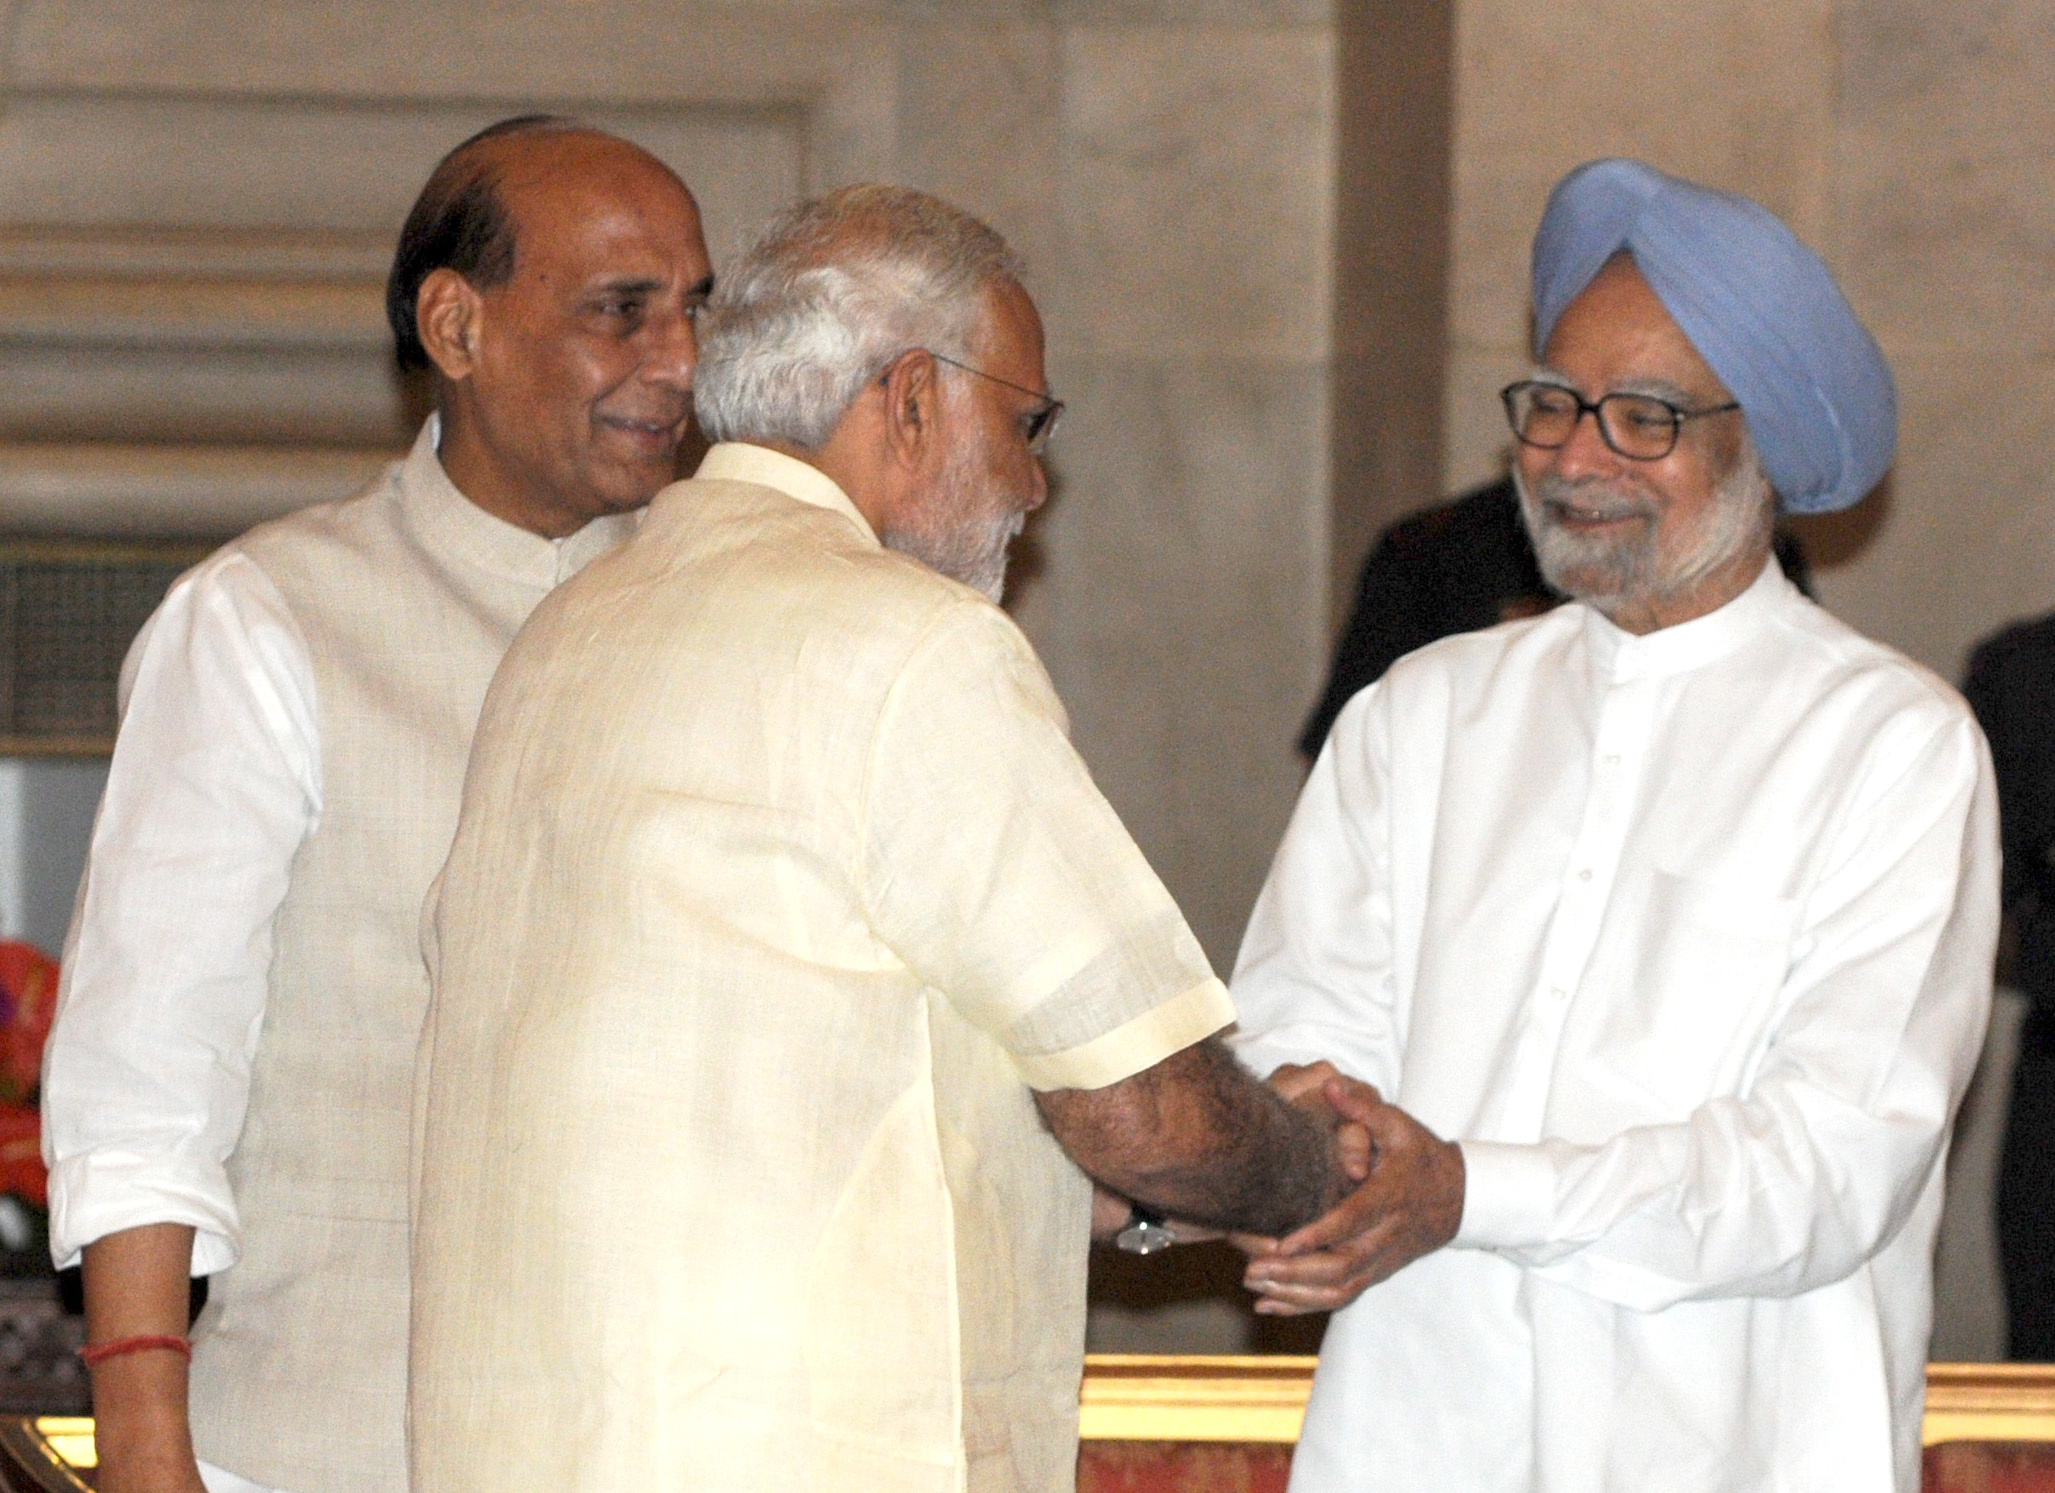 The Prime Minister, Shri Narendra Modi with the former Prime Minister, Dr. Manmohan Singh at the 'At Home' function, organised on the occasion of 69th Independence Day, at Rashtrapati Bhavan, in Delhi on August 15, 2015. The Union Home Minister, Shri Rajnath Singh is also seen.